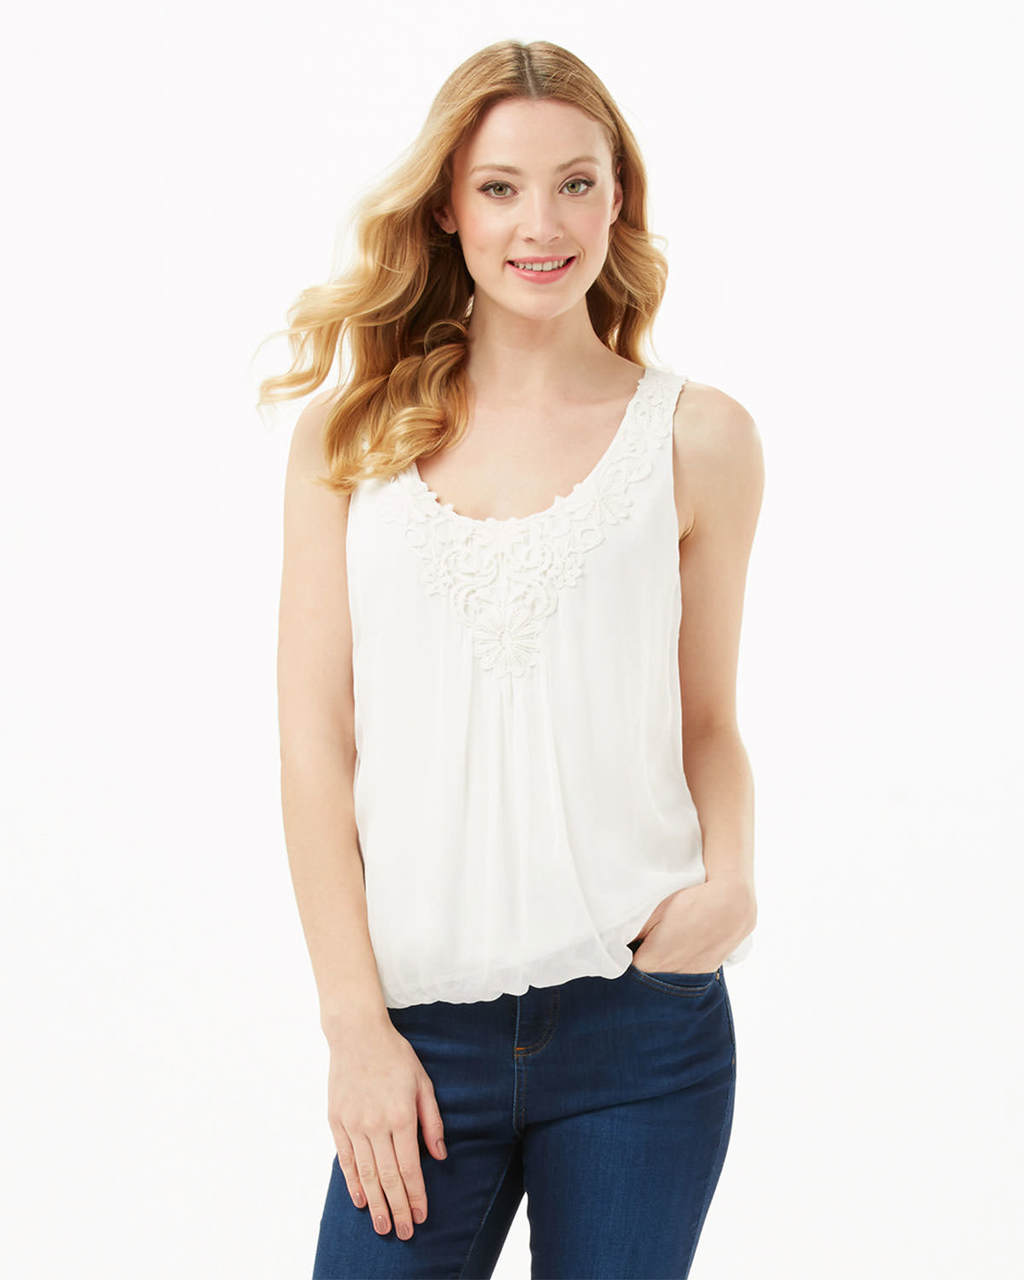 Lua Lace Trim Blouse - neckline: round neck; sleeve style: sleeveless; style: vest top; predominant colour: white; occasions: evening; length: standard; fibres: silk - 100%; fit: body skimming; sleeve length: sleeveless; texture group: lace; pattern type: fabric; pattern size: light/subtle; pattern: patterned/print; embellishment: lace; season: s/s 2016; wardrobe: event